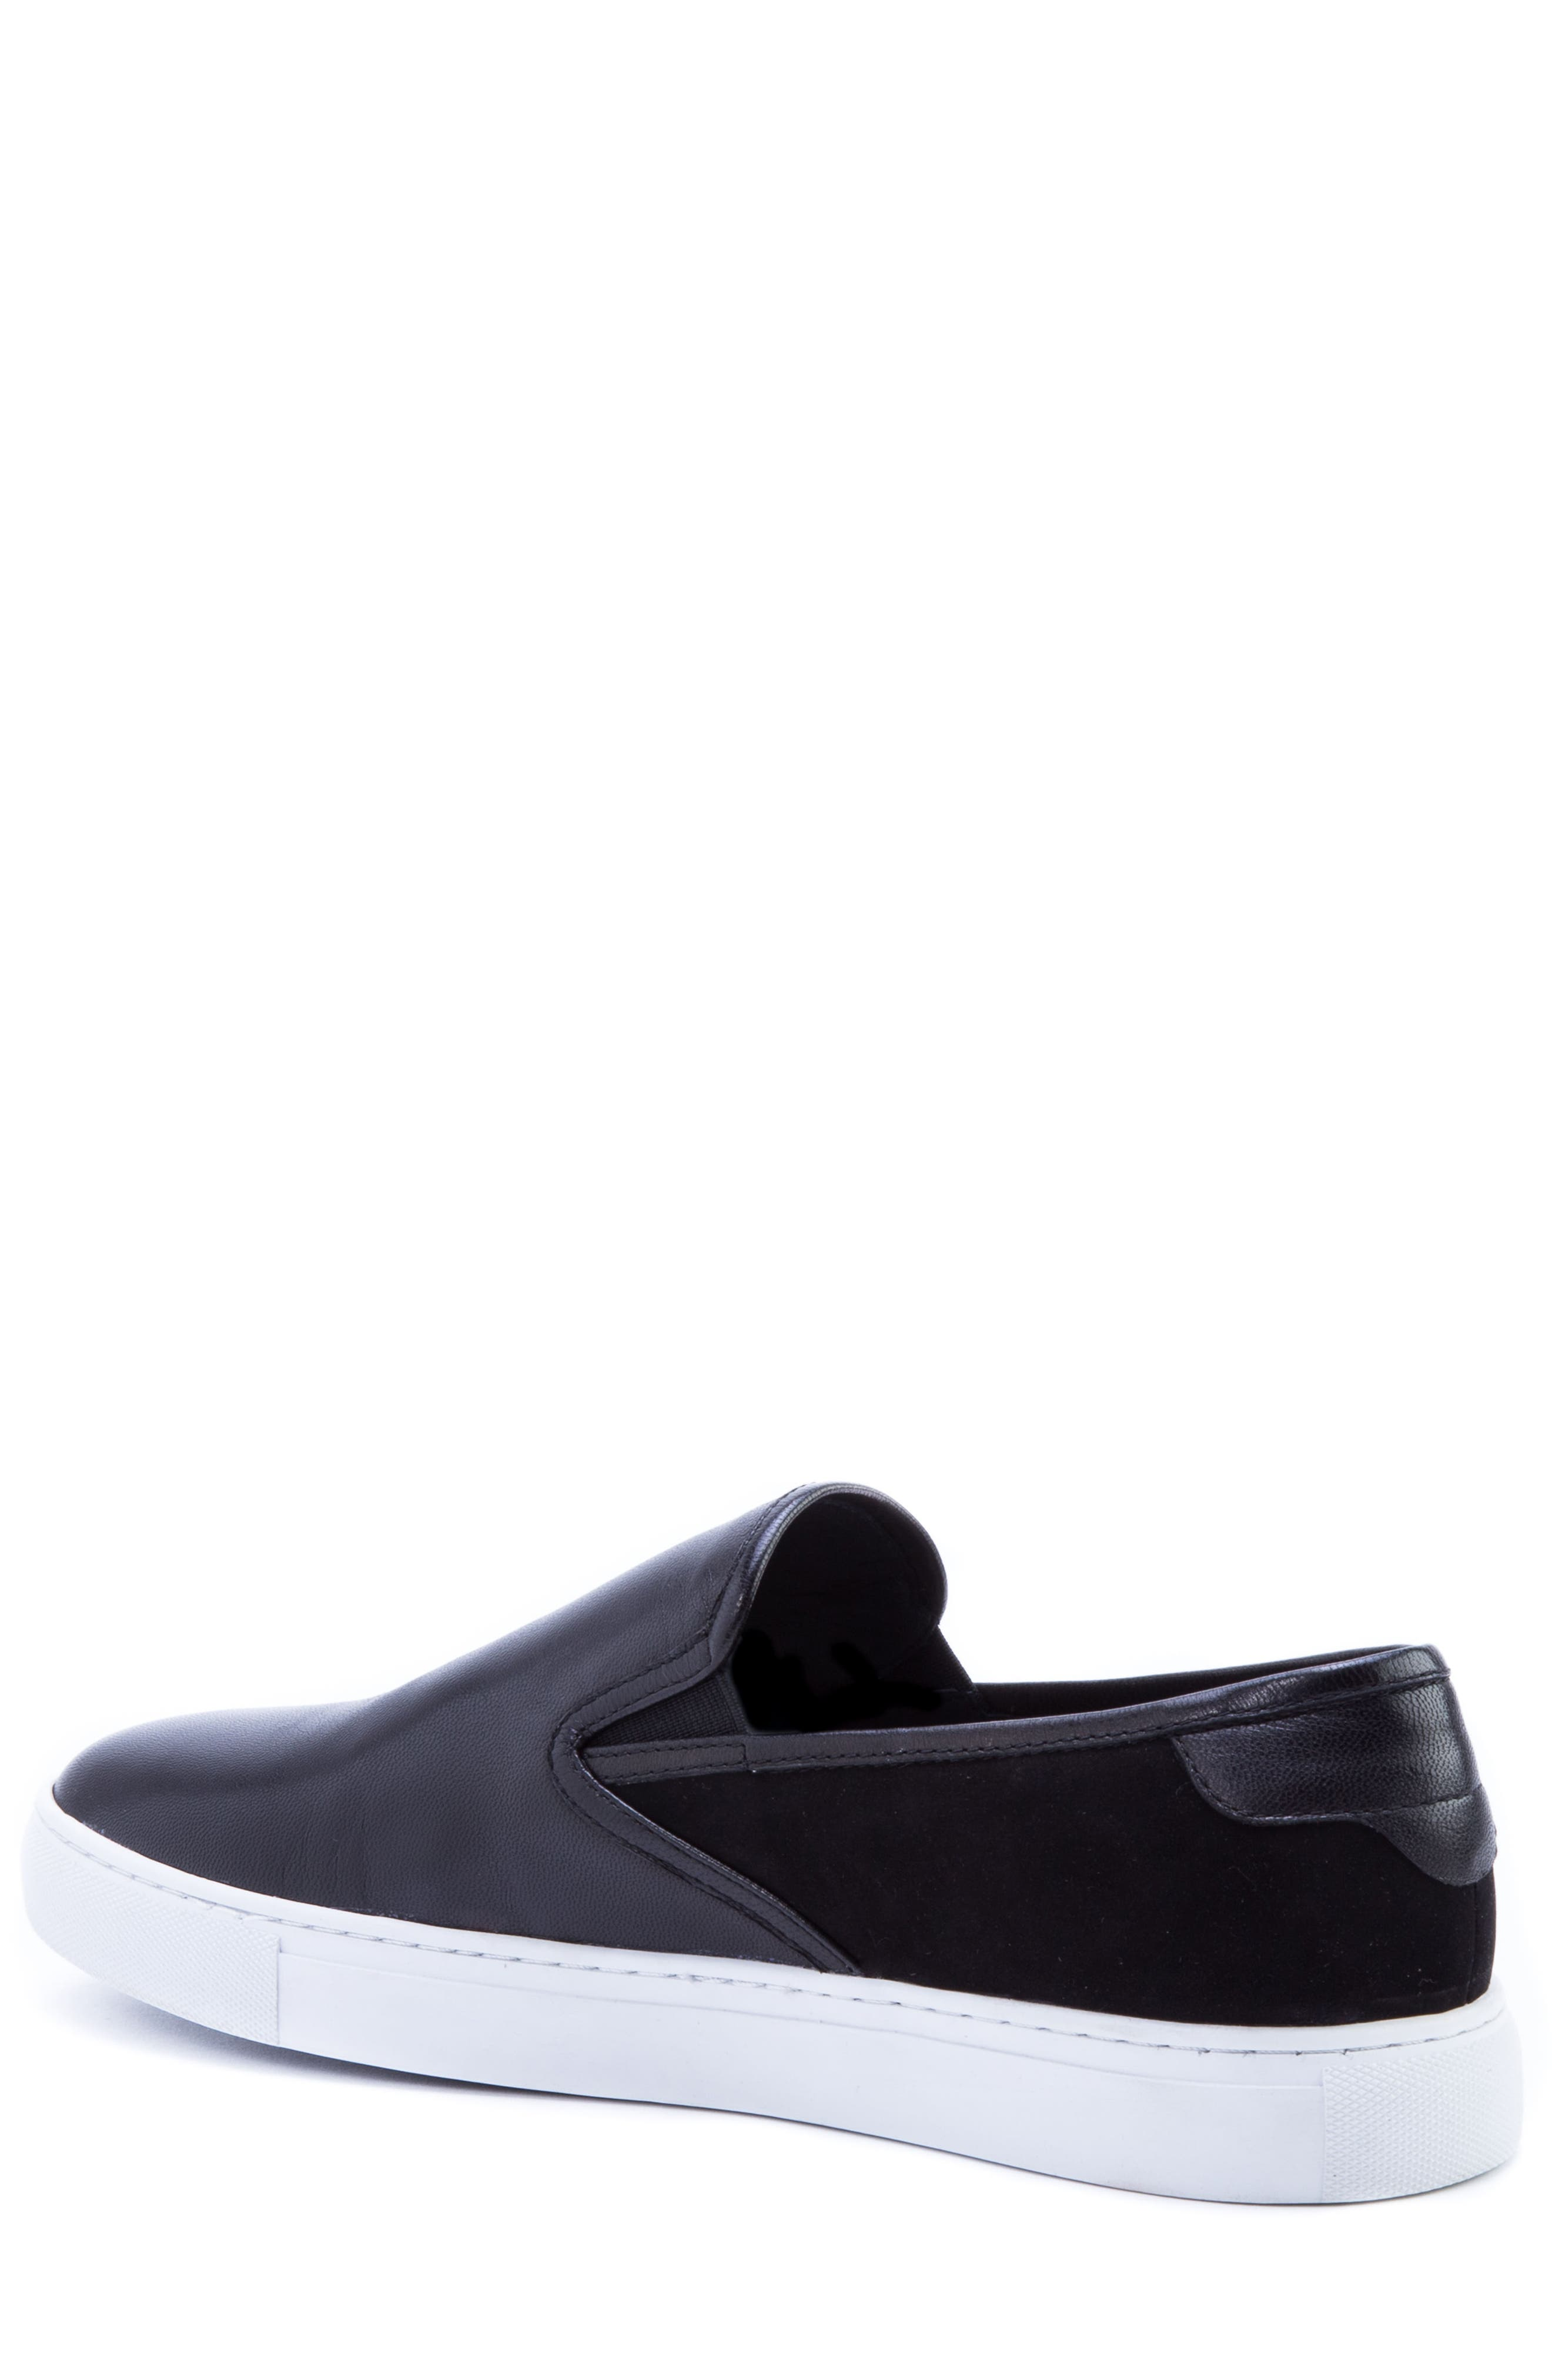 Duchamps Slip-On Sneaker,                             Alternate thumbnail 2, color,                             BLACK LEATHER/ SUEDE